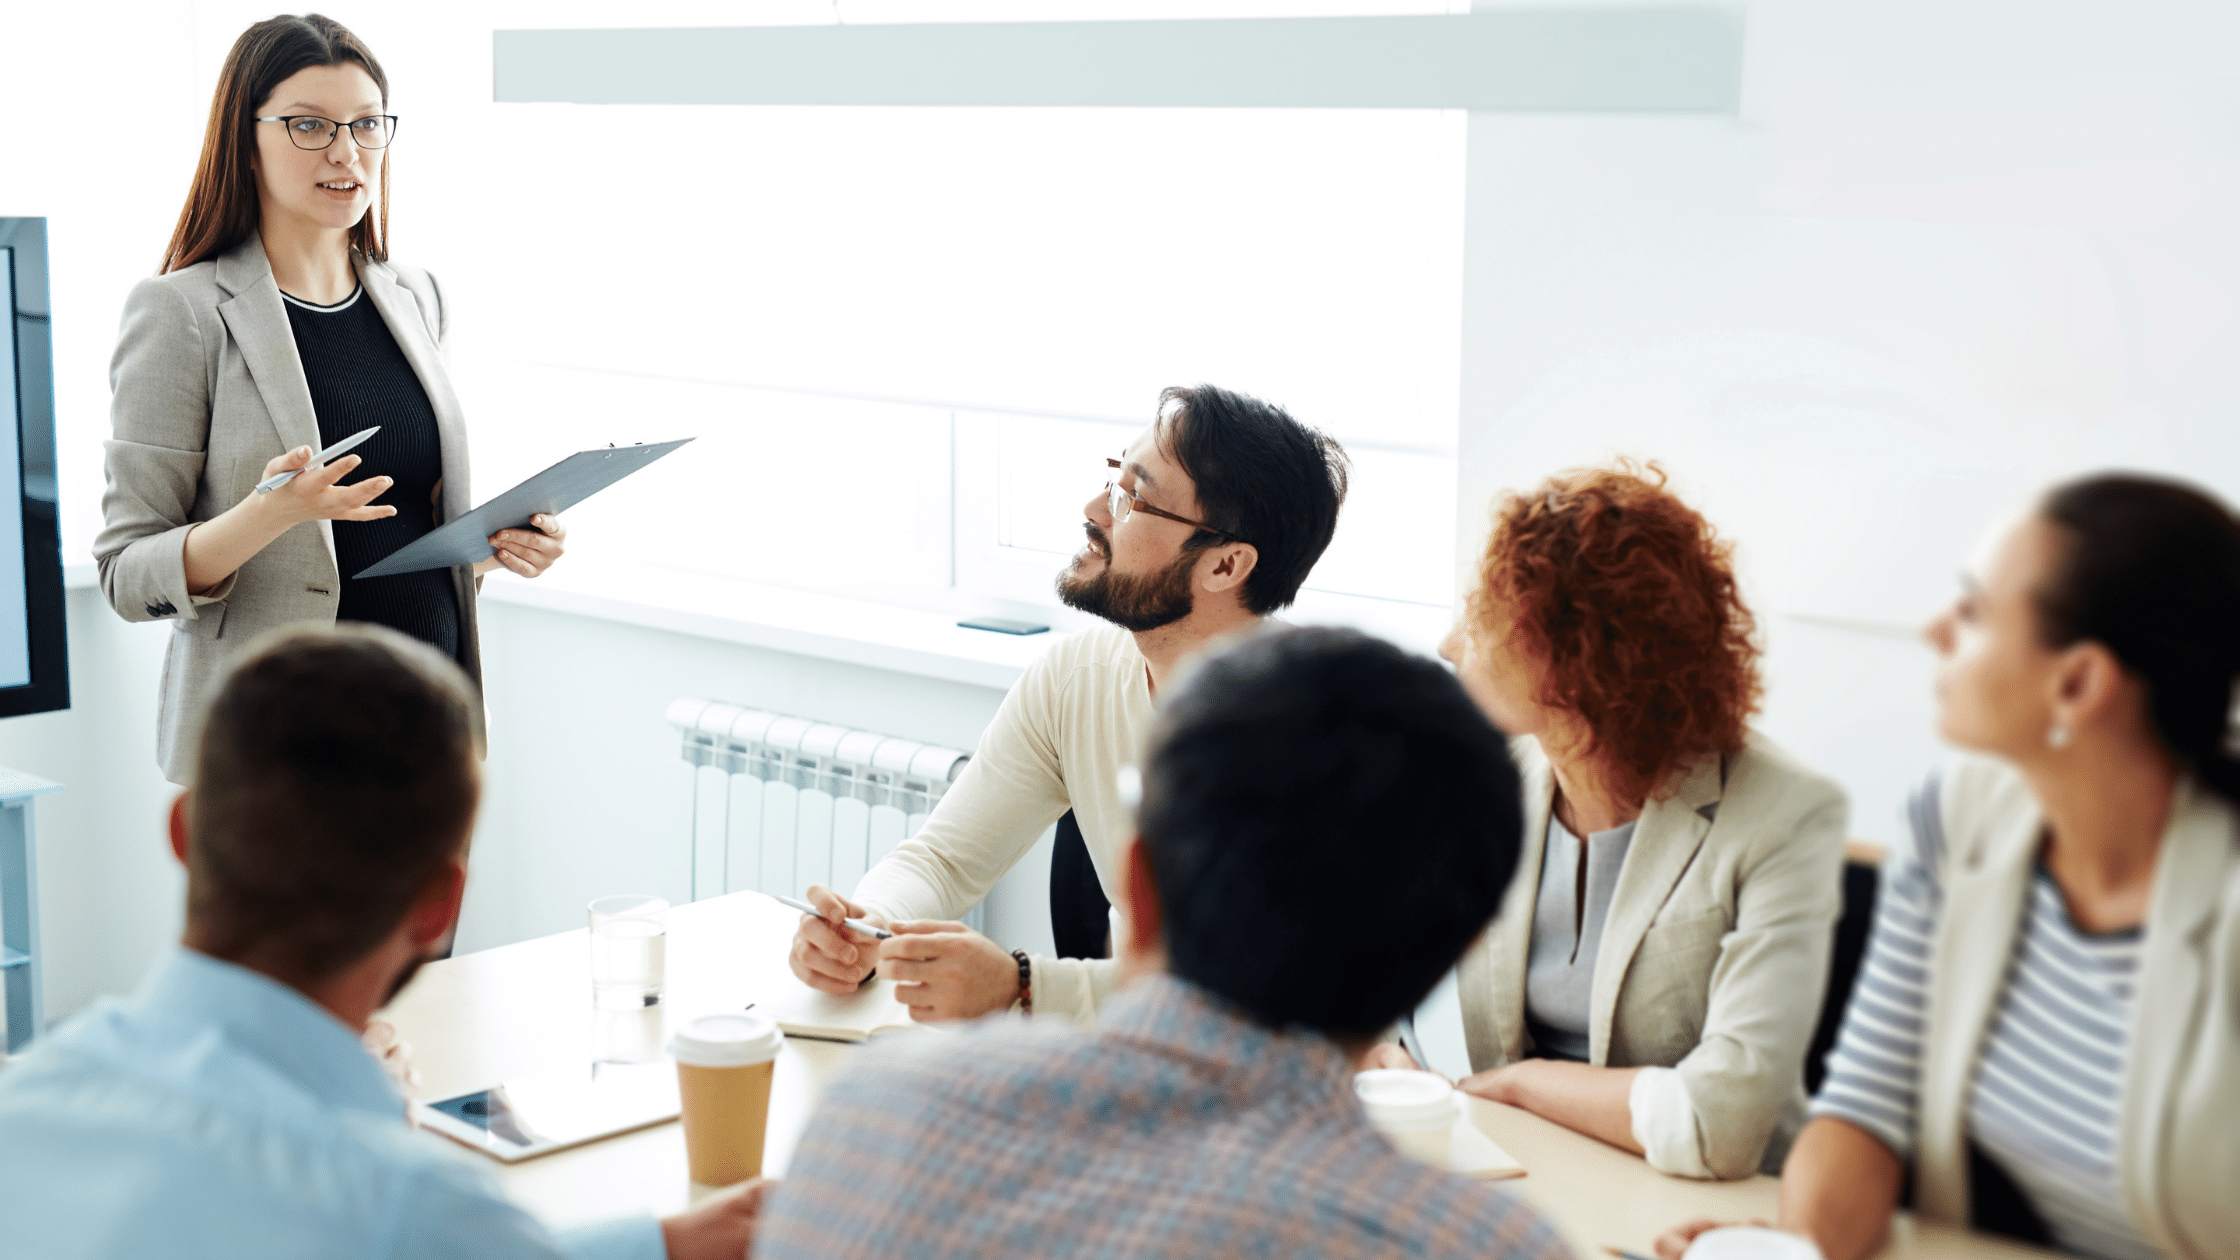 How to Become an Effective Manager